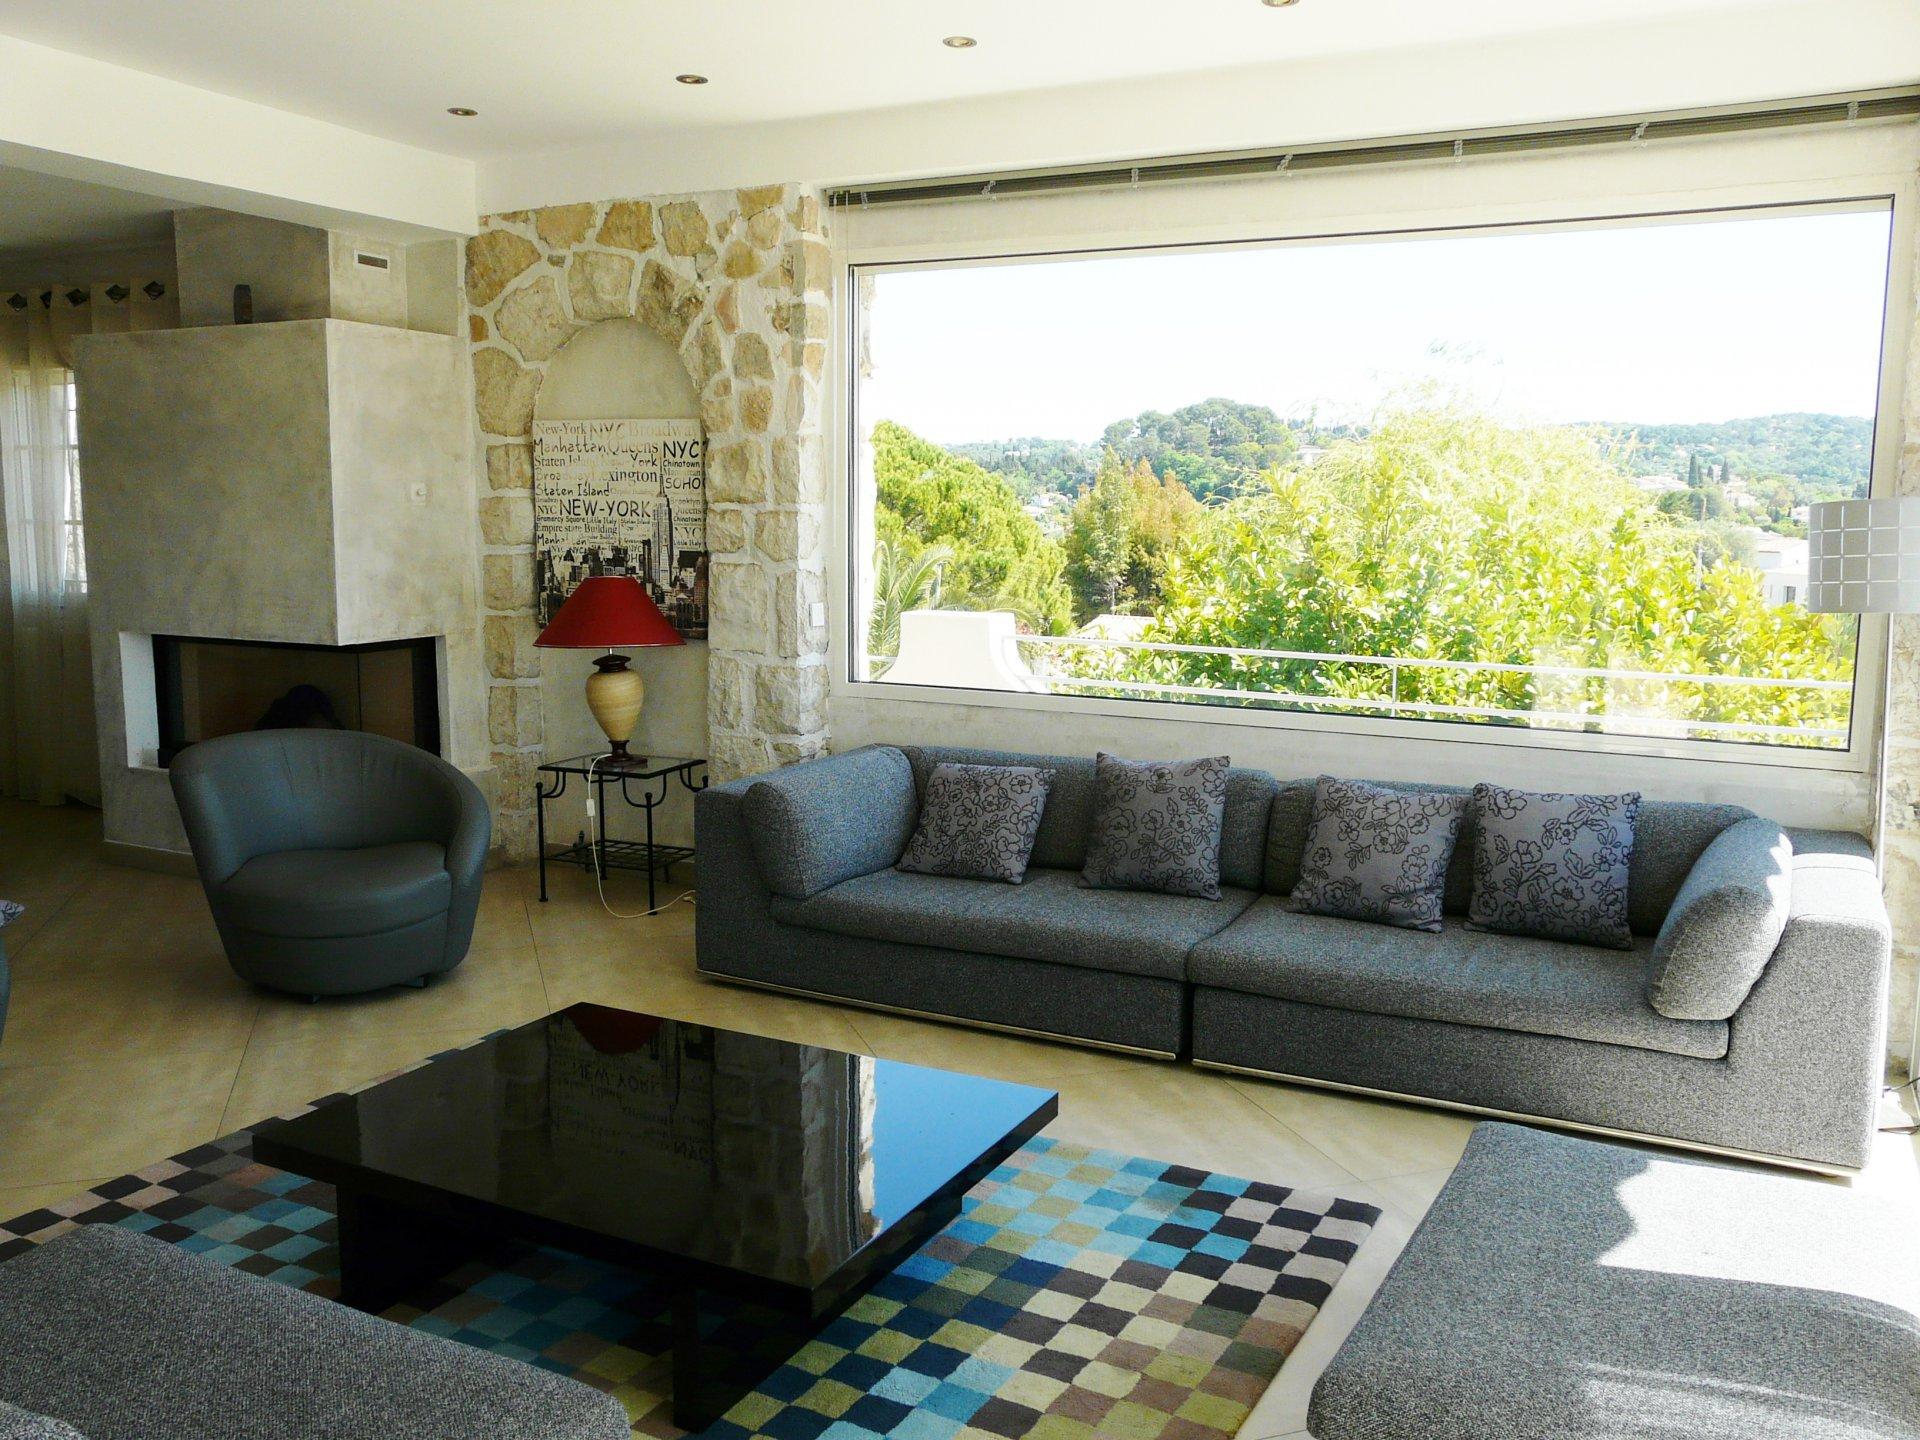 BEAUTIFUL AND COMFORTABLE VILLA IN A VERY QUIET AREA